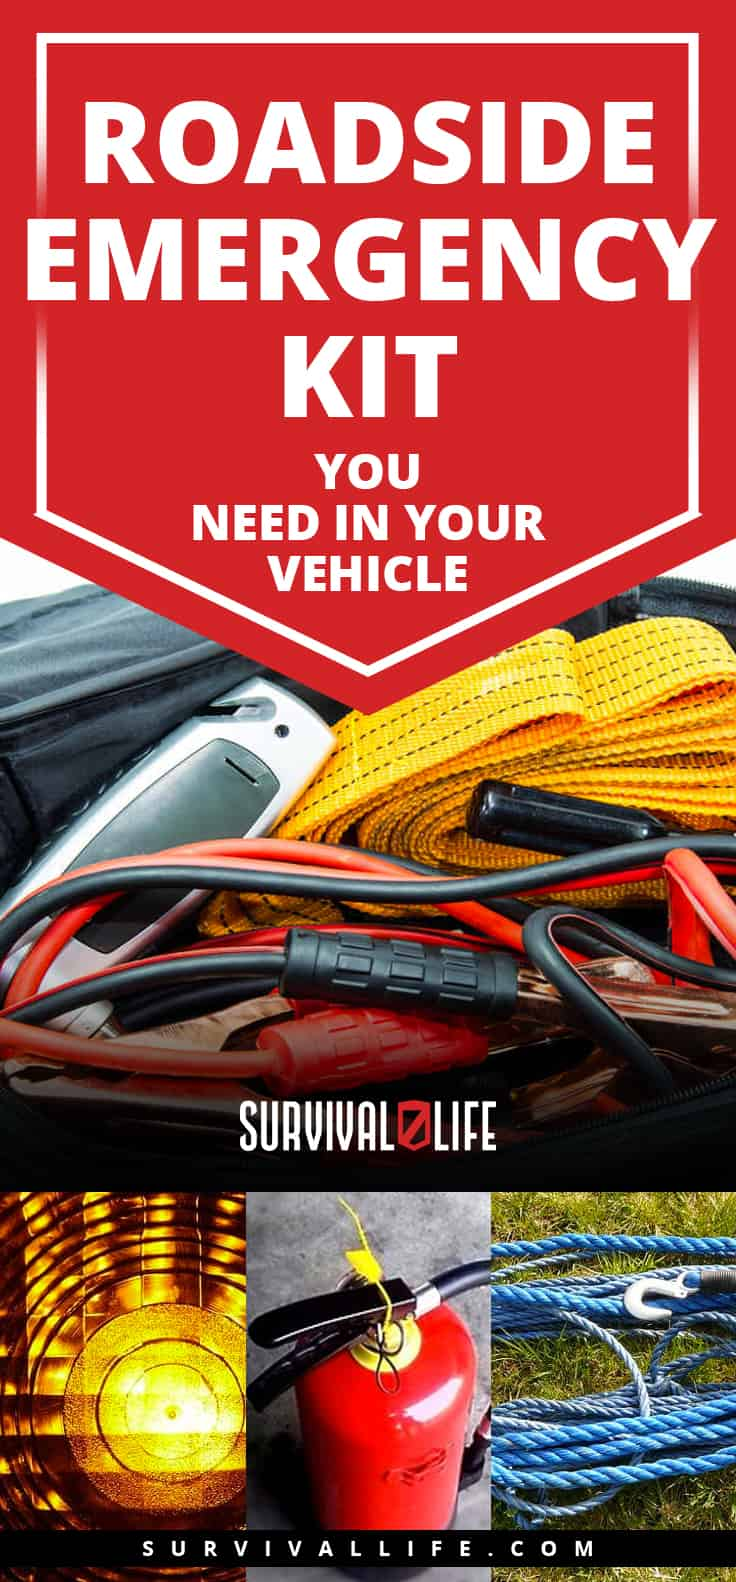 Roadside Emergency Kit You Need In Your Vehicle